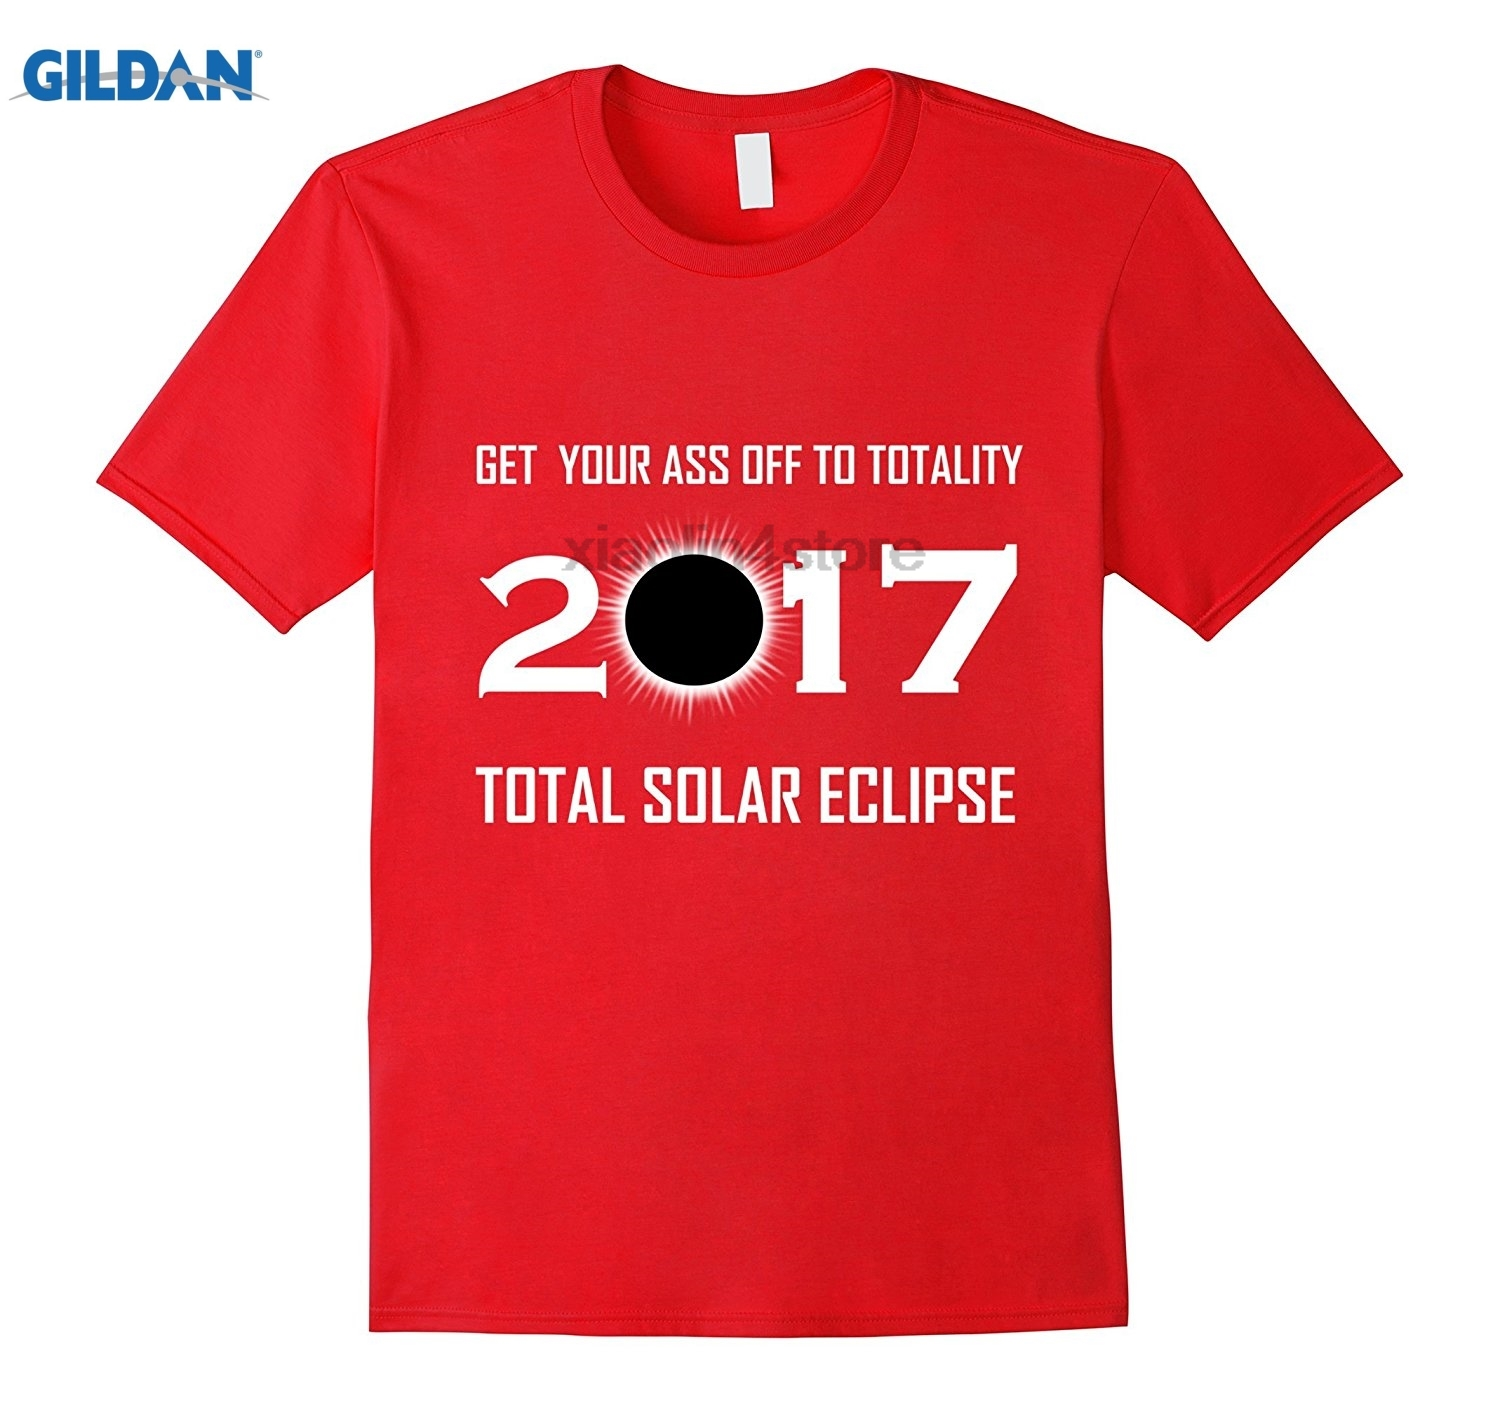 GILDAN GET YOUR ASS OFF TO TOTALITY- SOLAR ECLIPSE 2017 TShirt Mens Cool Short-Sleeve T-Shirt